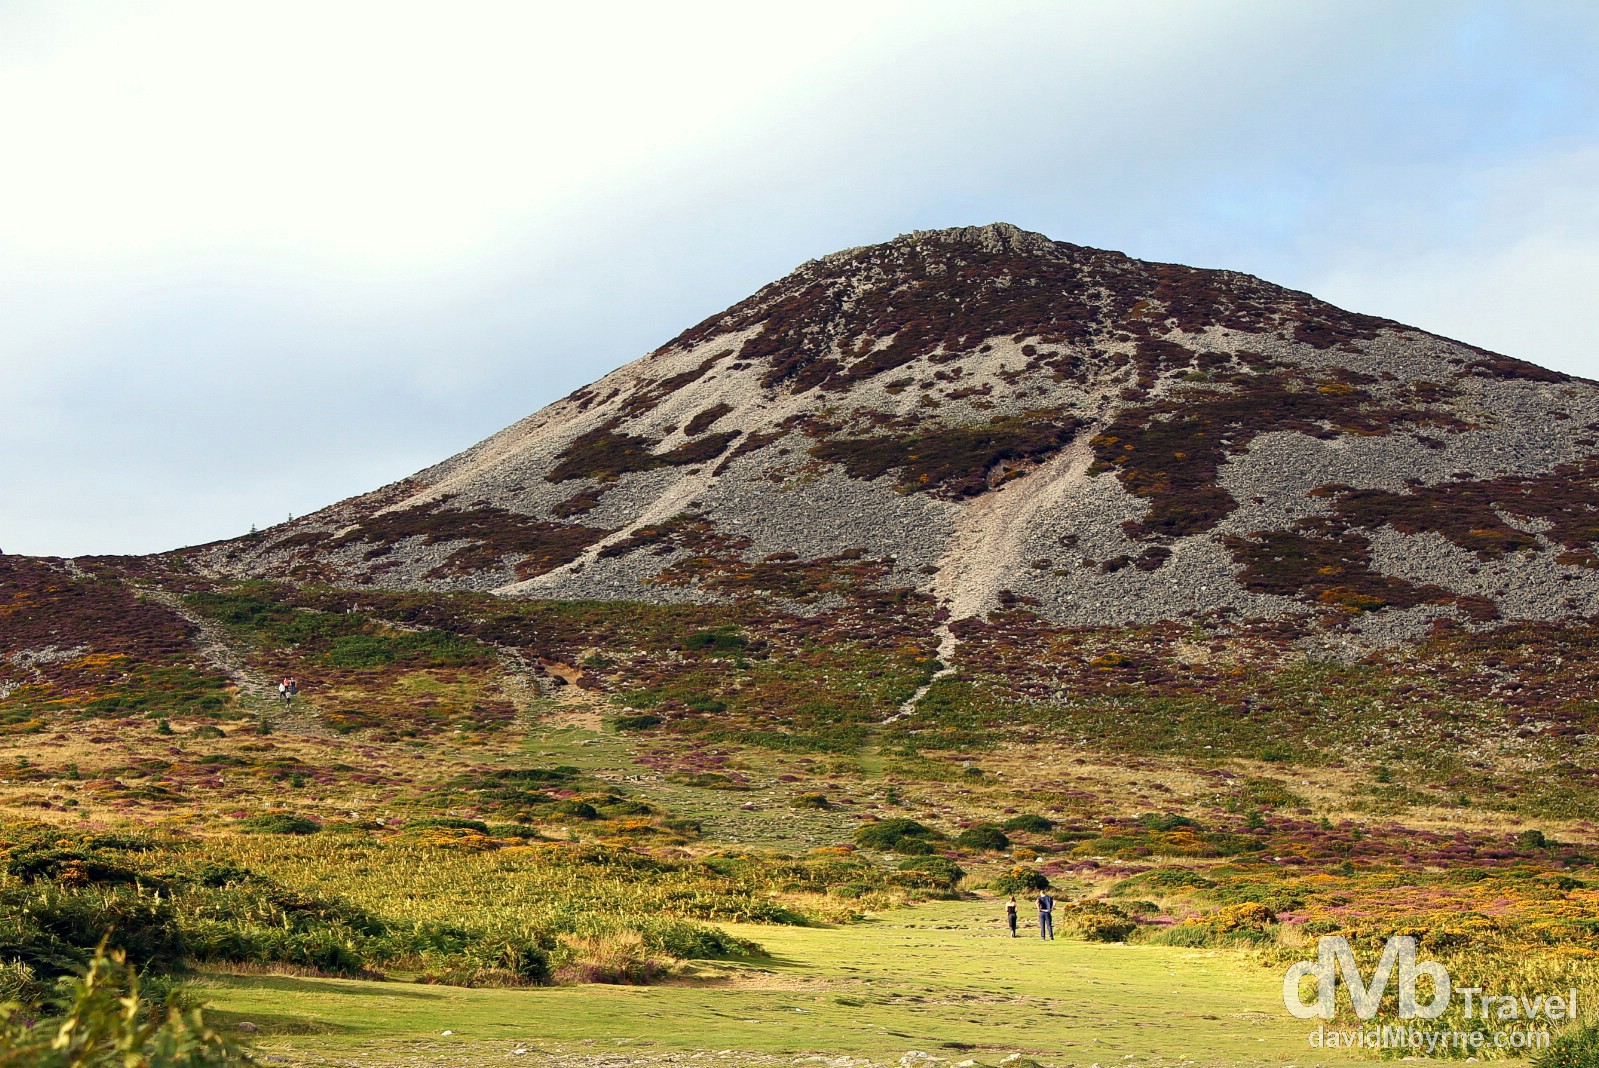 Walking towards the Great Sugar Loaf in Co. Wicklow, Ireland. August 31, 2014.